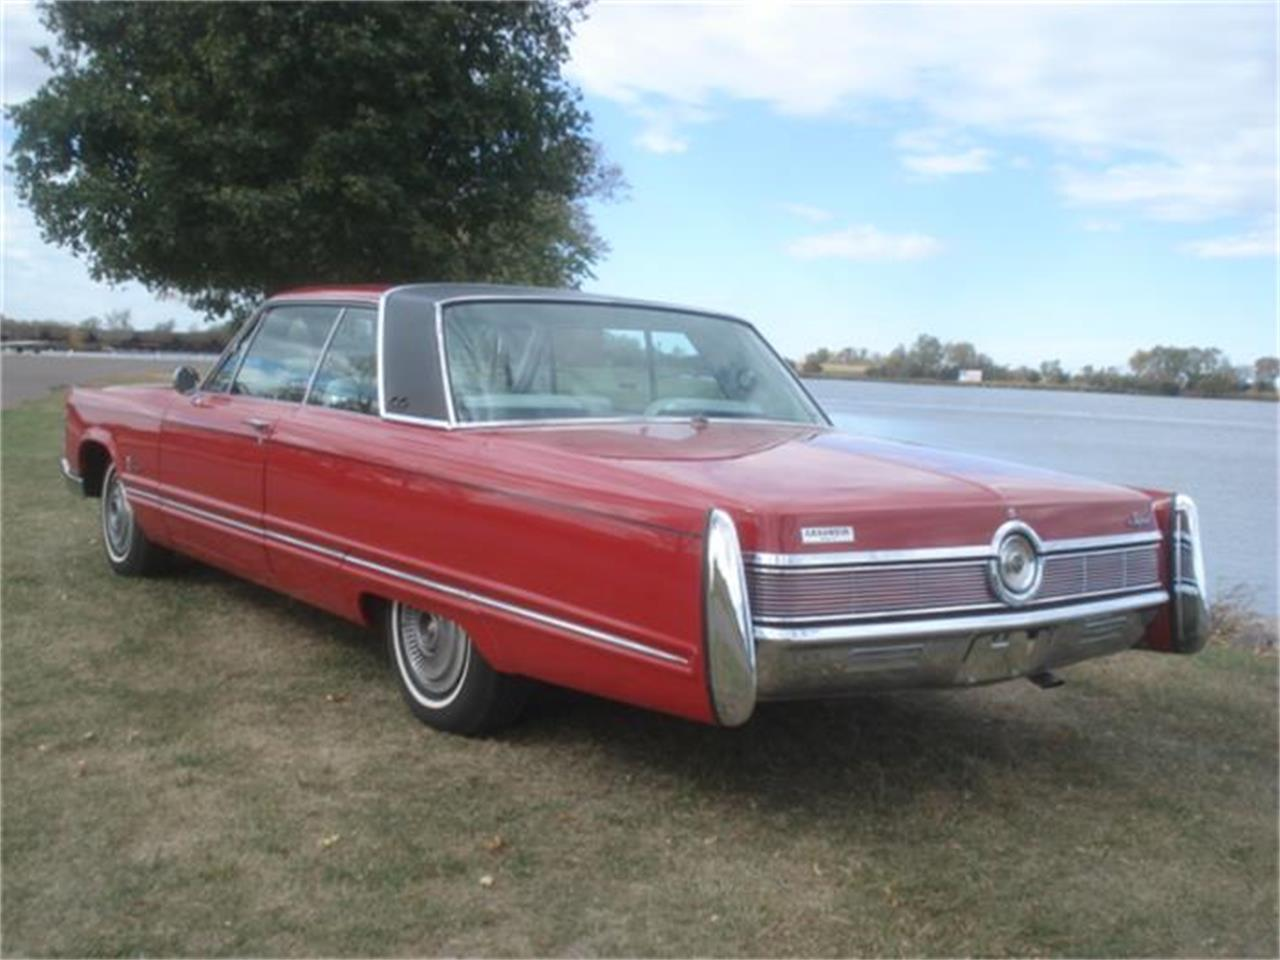 Large Picture of Classic 1967 Chrysler Imperial - $16,550.00 - FNNW